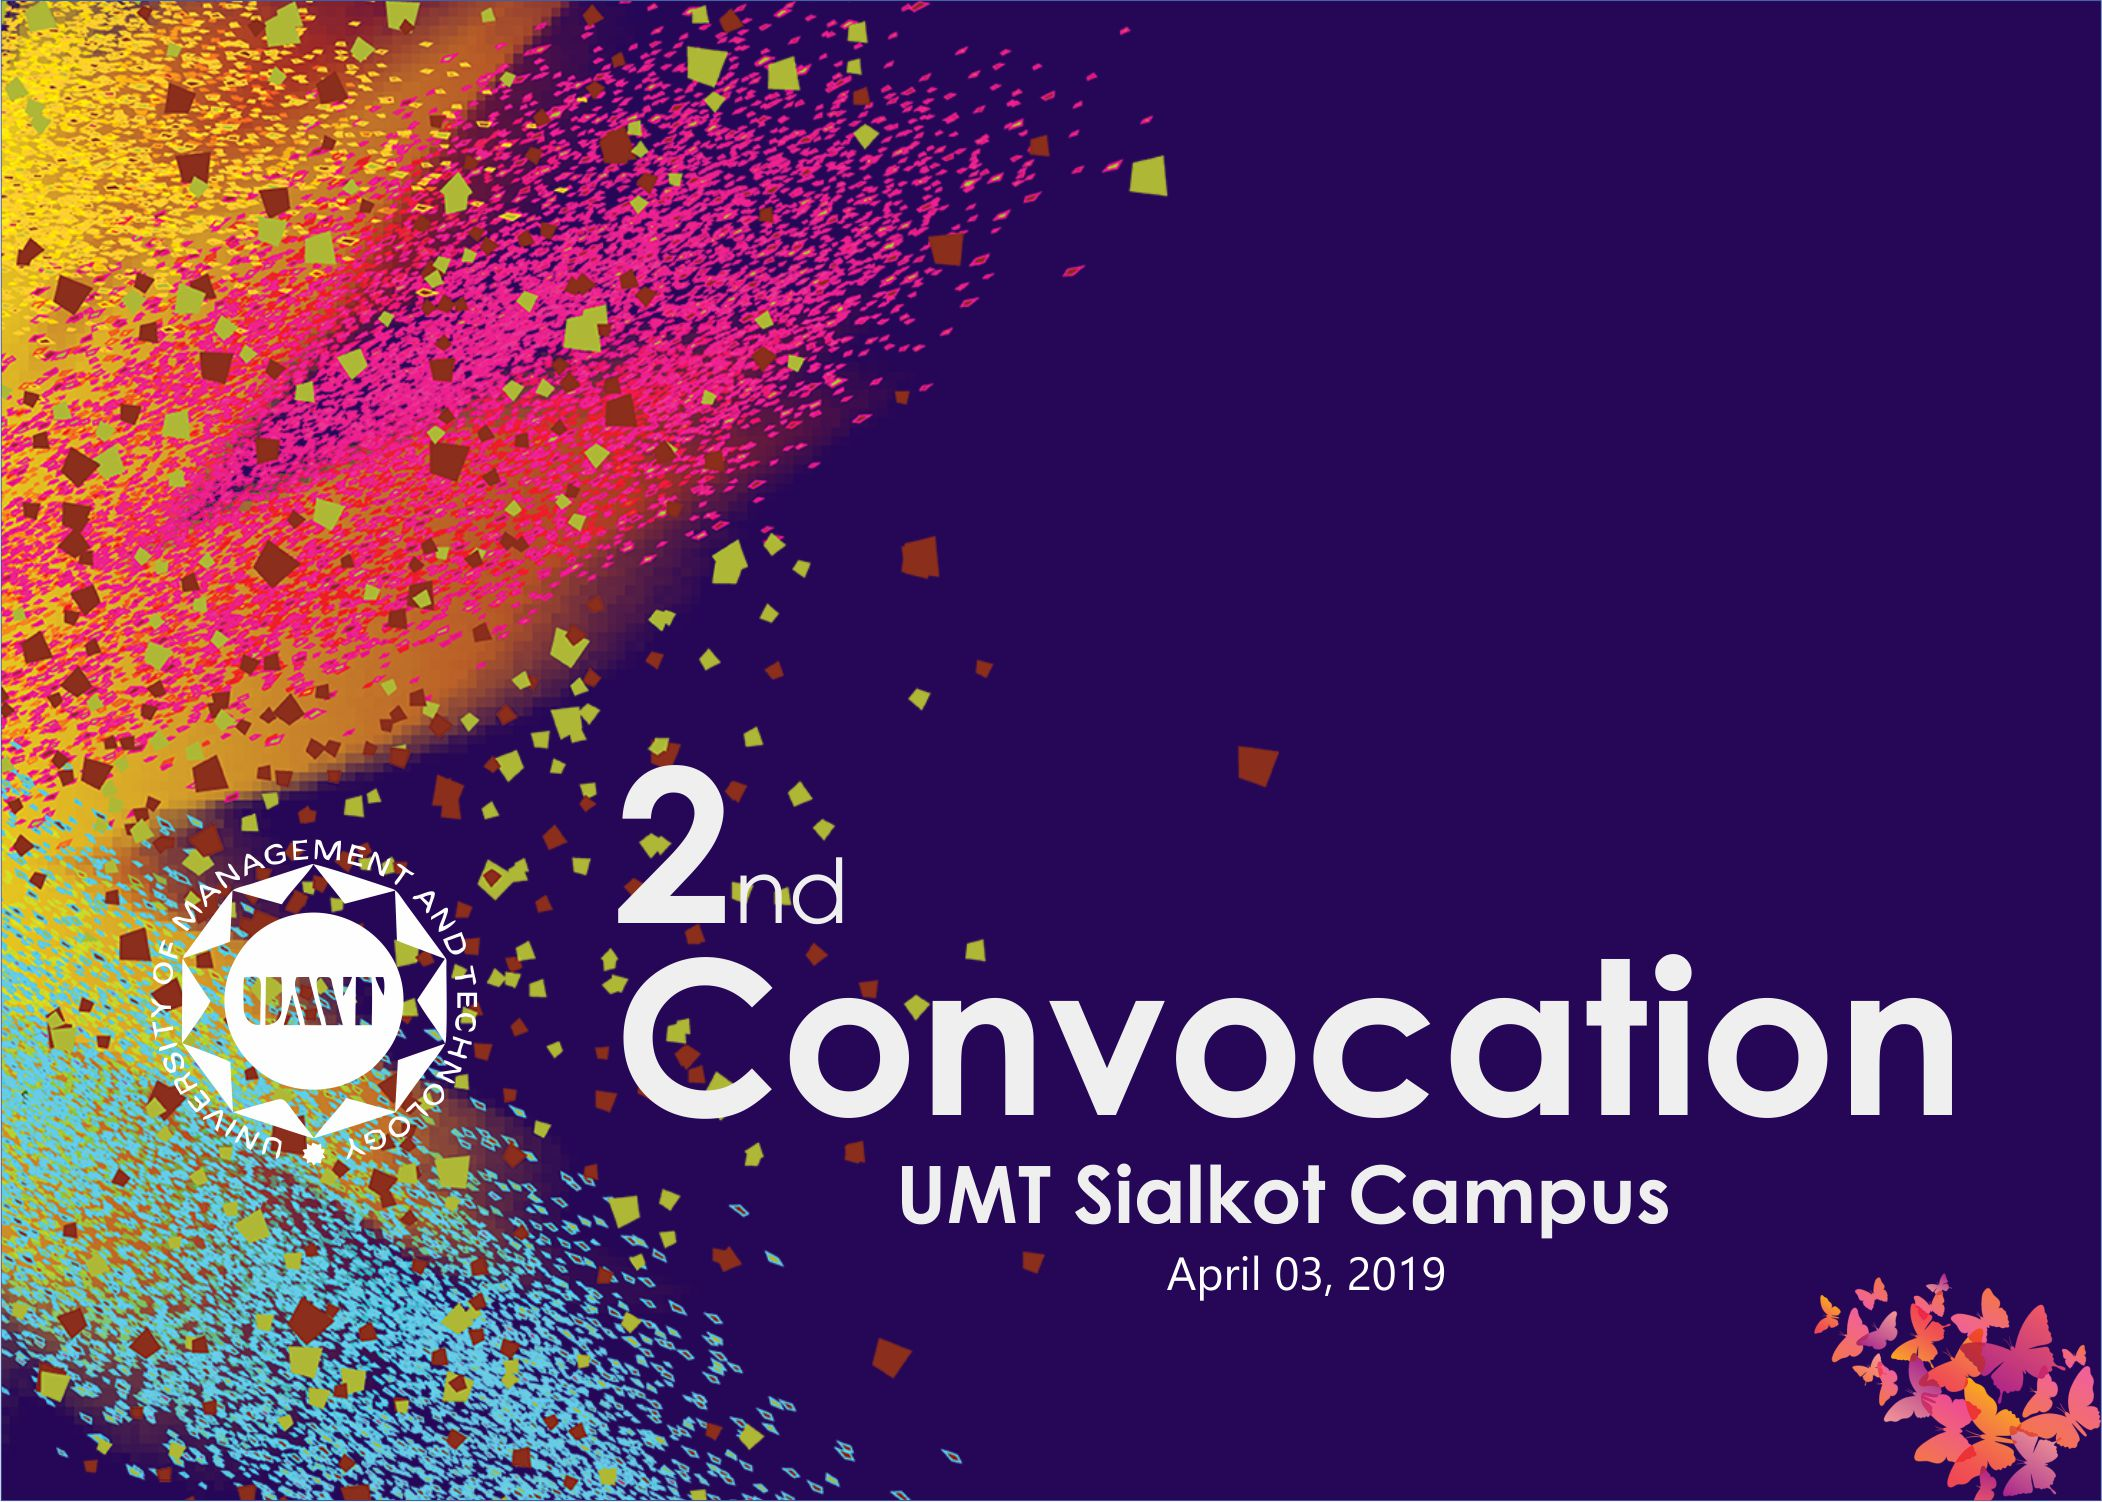 2nd UMT Sialkot Convocation